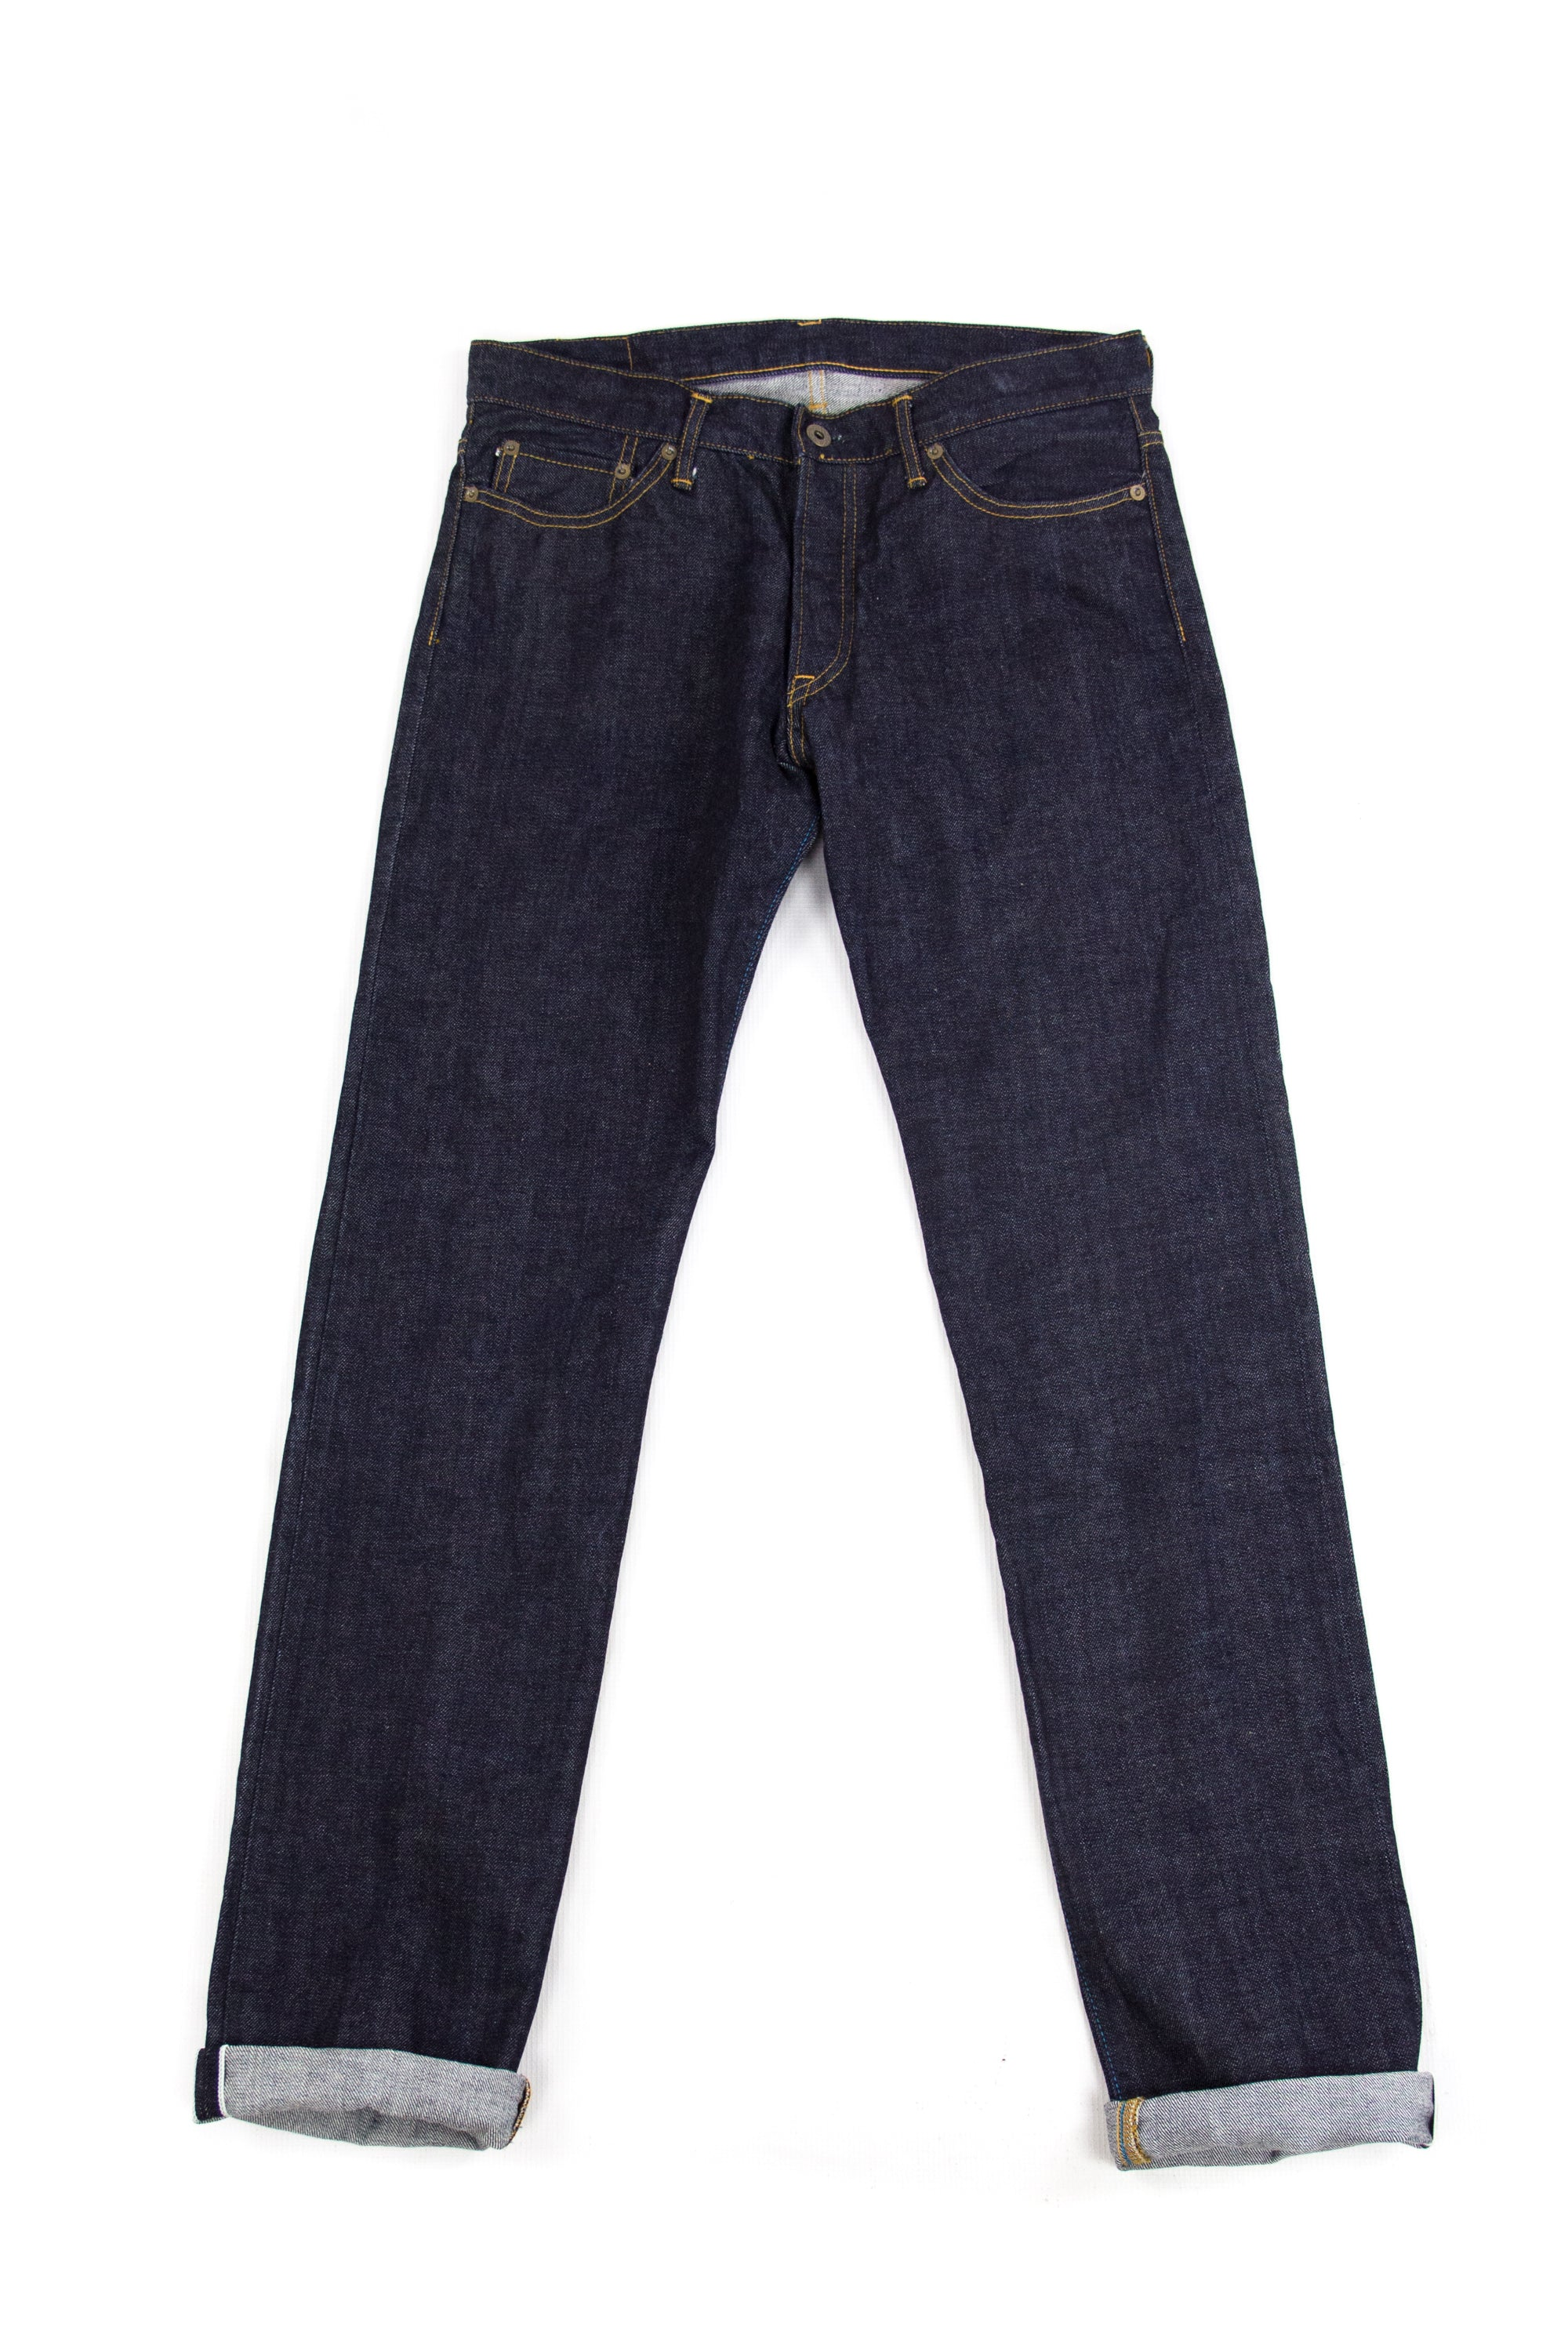 Japan Blue Jeans JBO406 Slim Tapered Sanforized Selvedge W32 - secondfirst